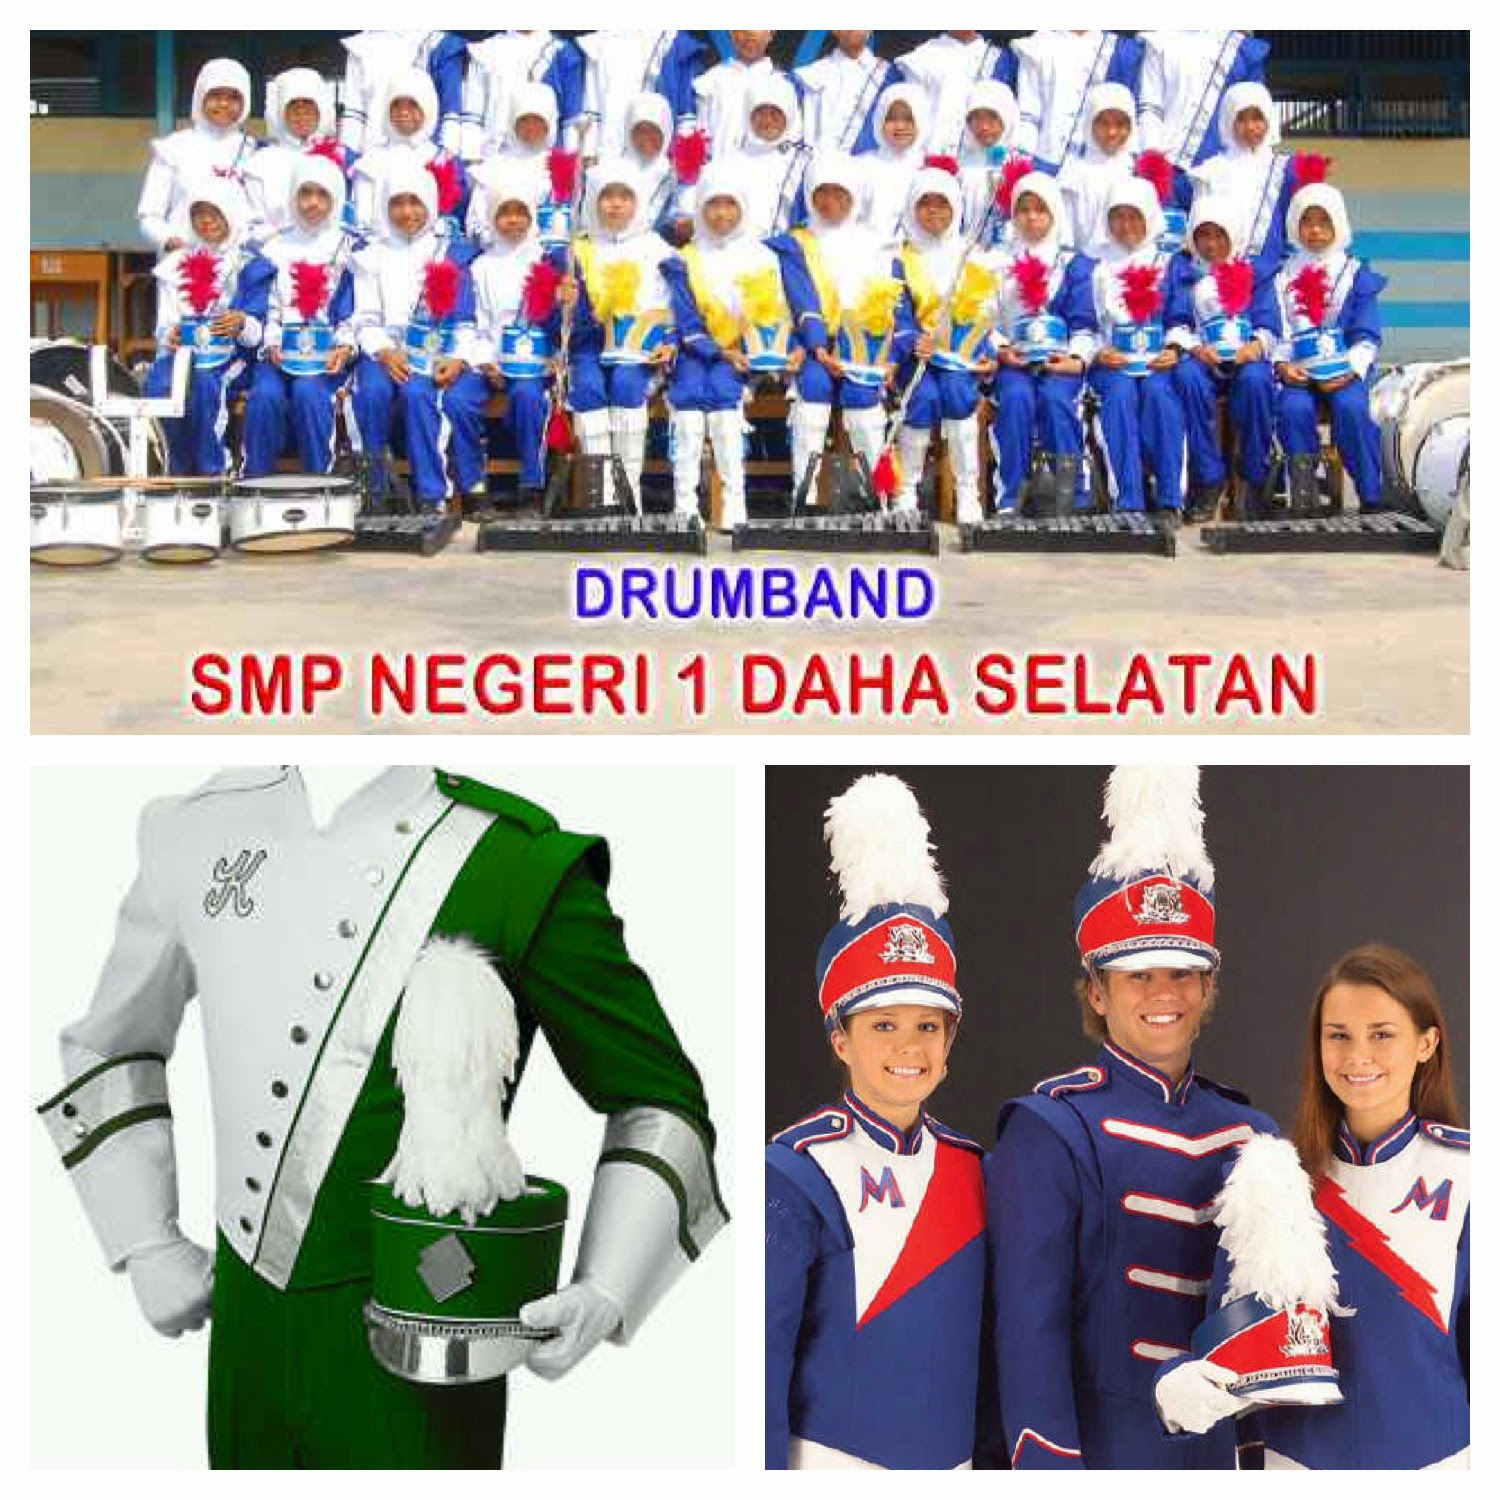 MARCHING BAND/DRUMBAND